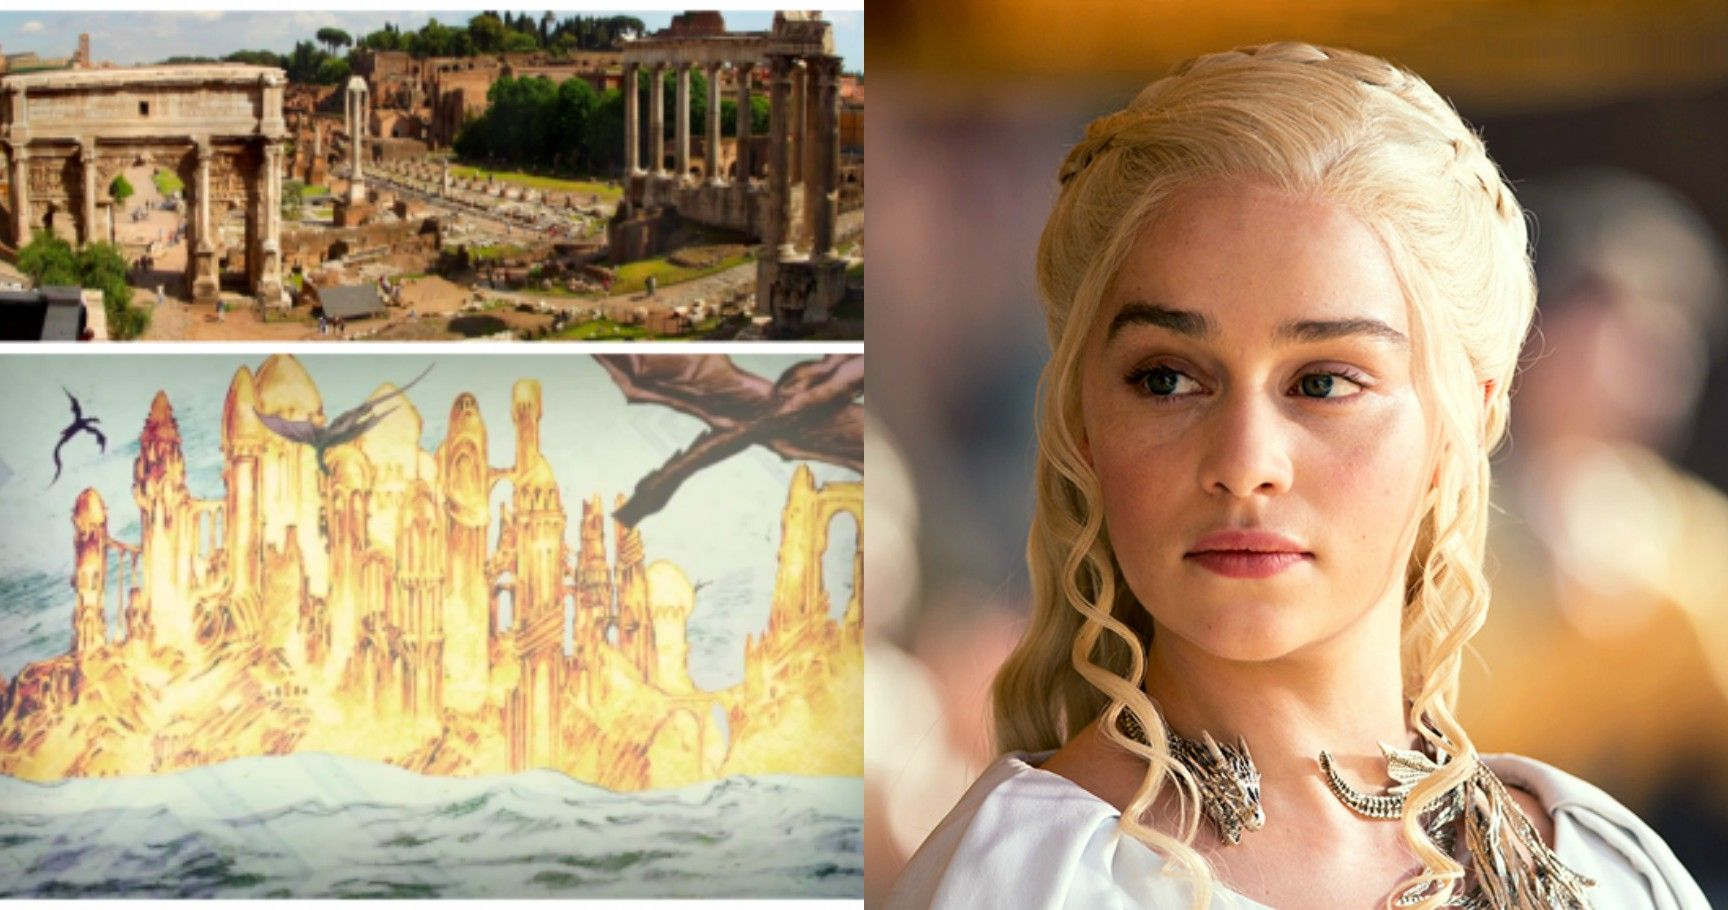 15 Mind-Blowing Ways Our World Inspired The Story Of 'Game Of Thrones'